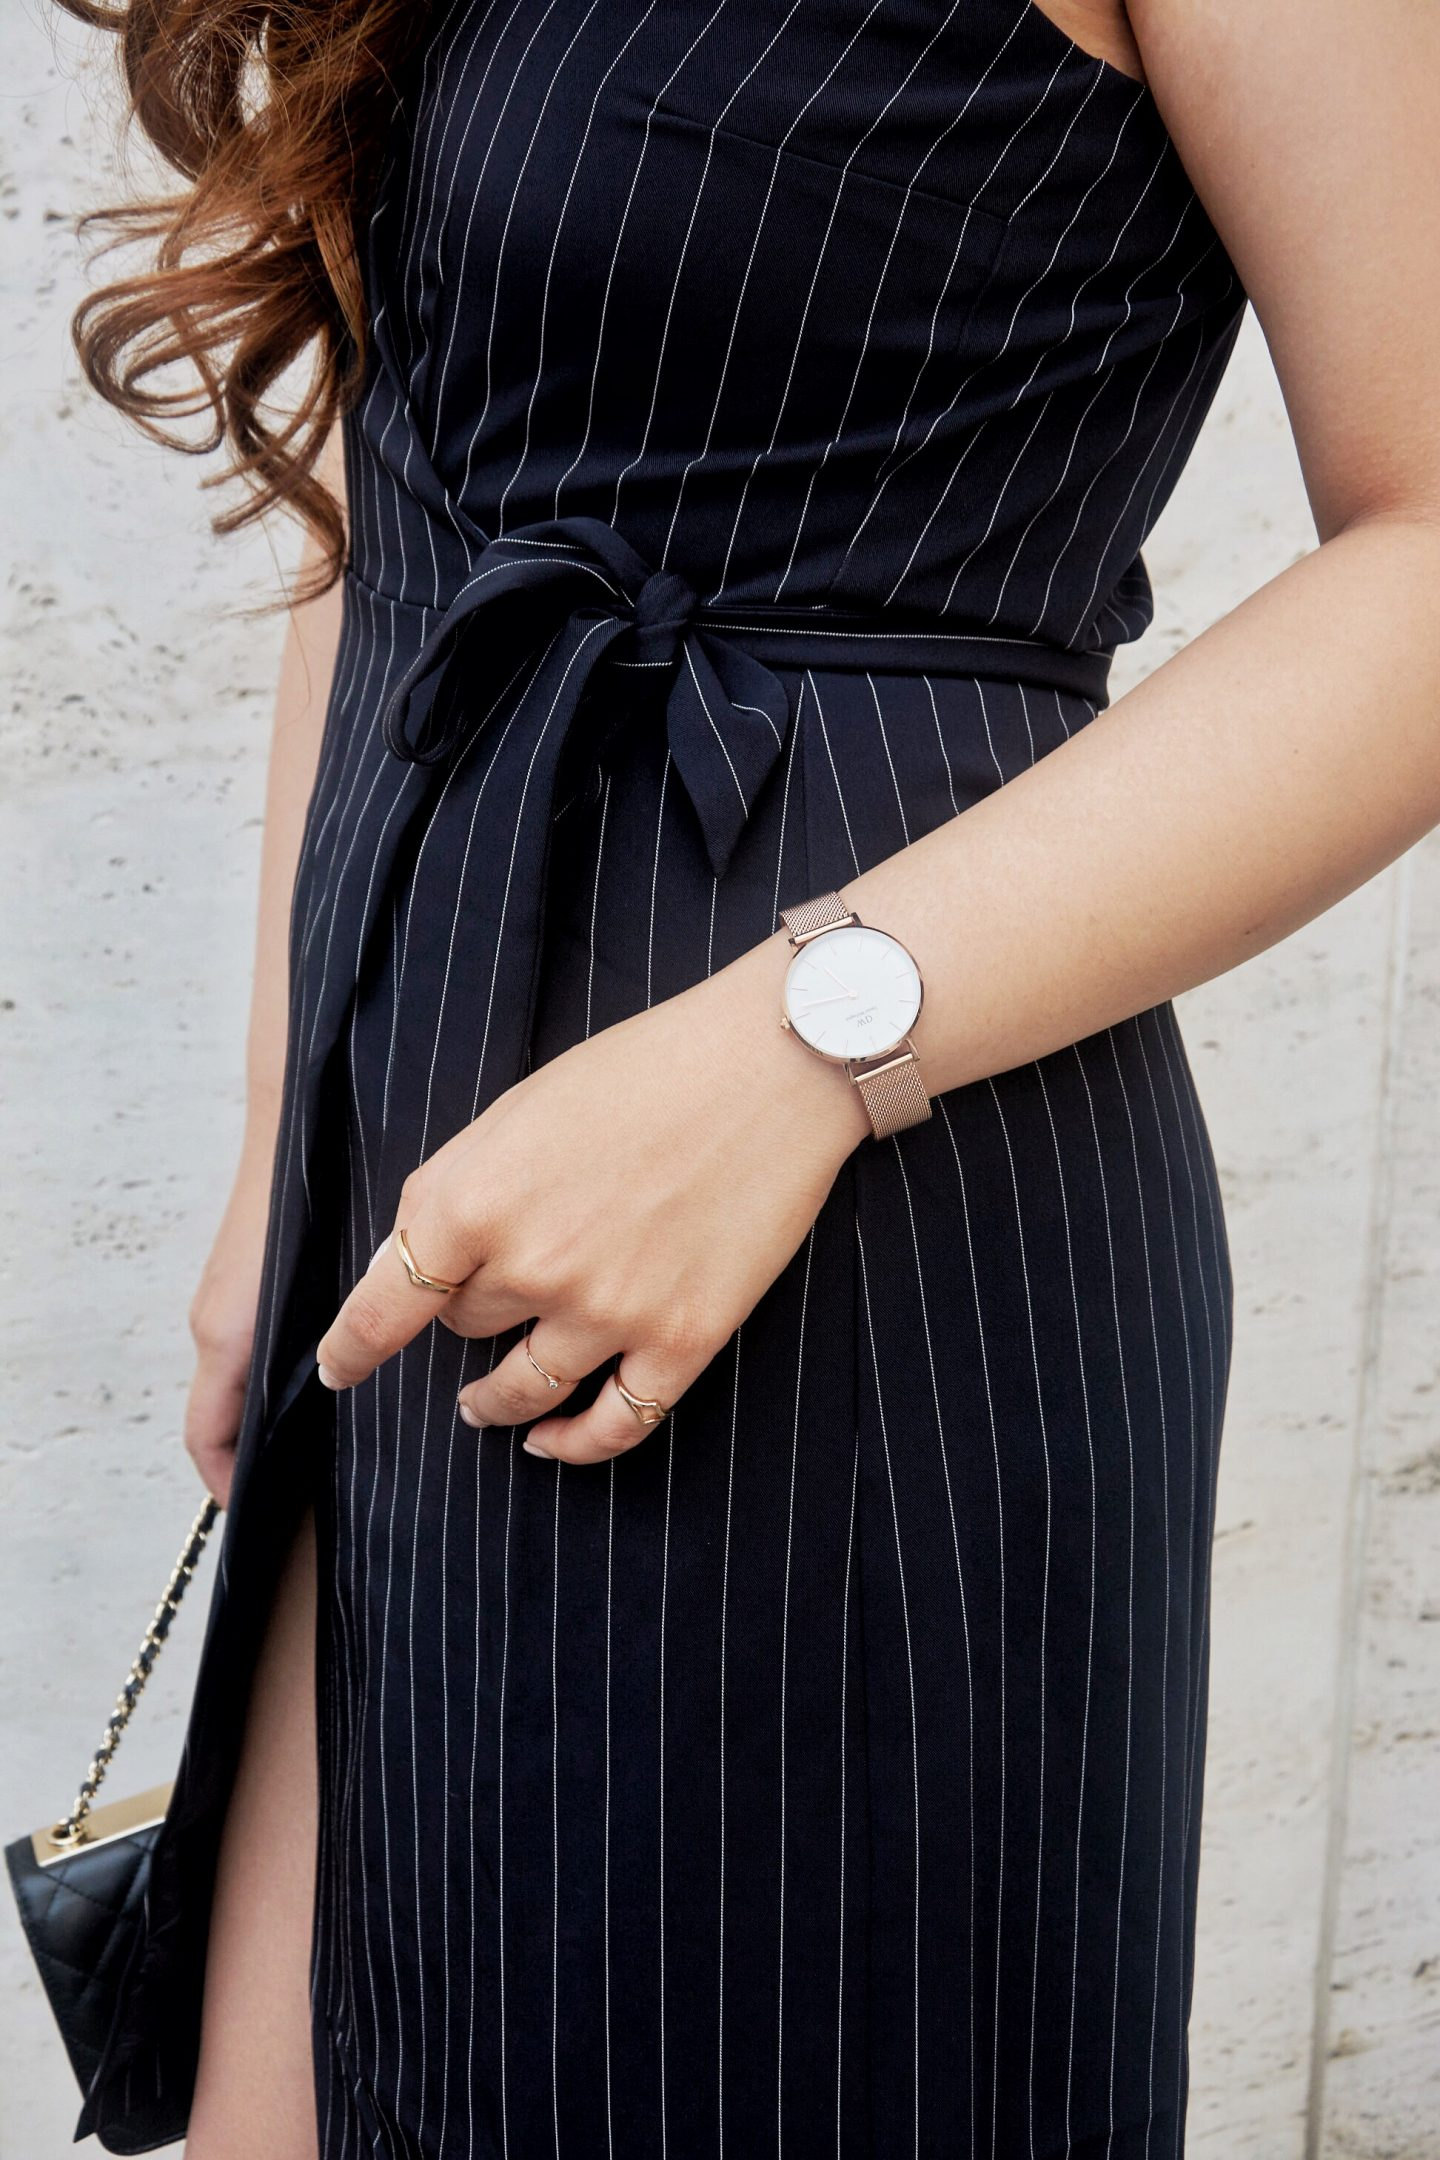 dw classic petite watch wrap dress